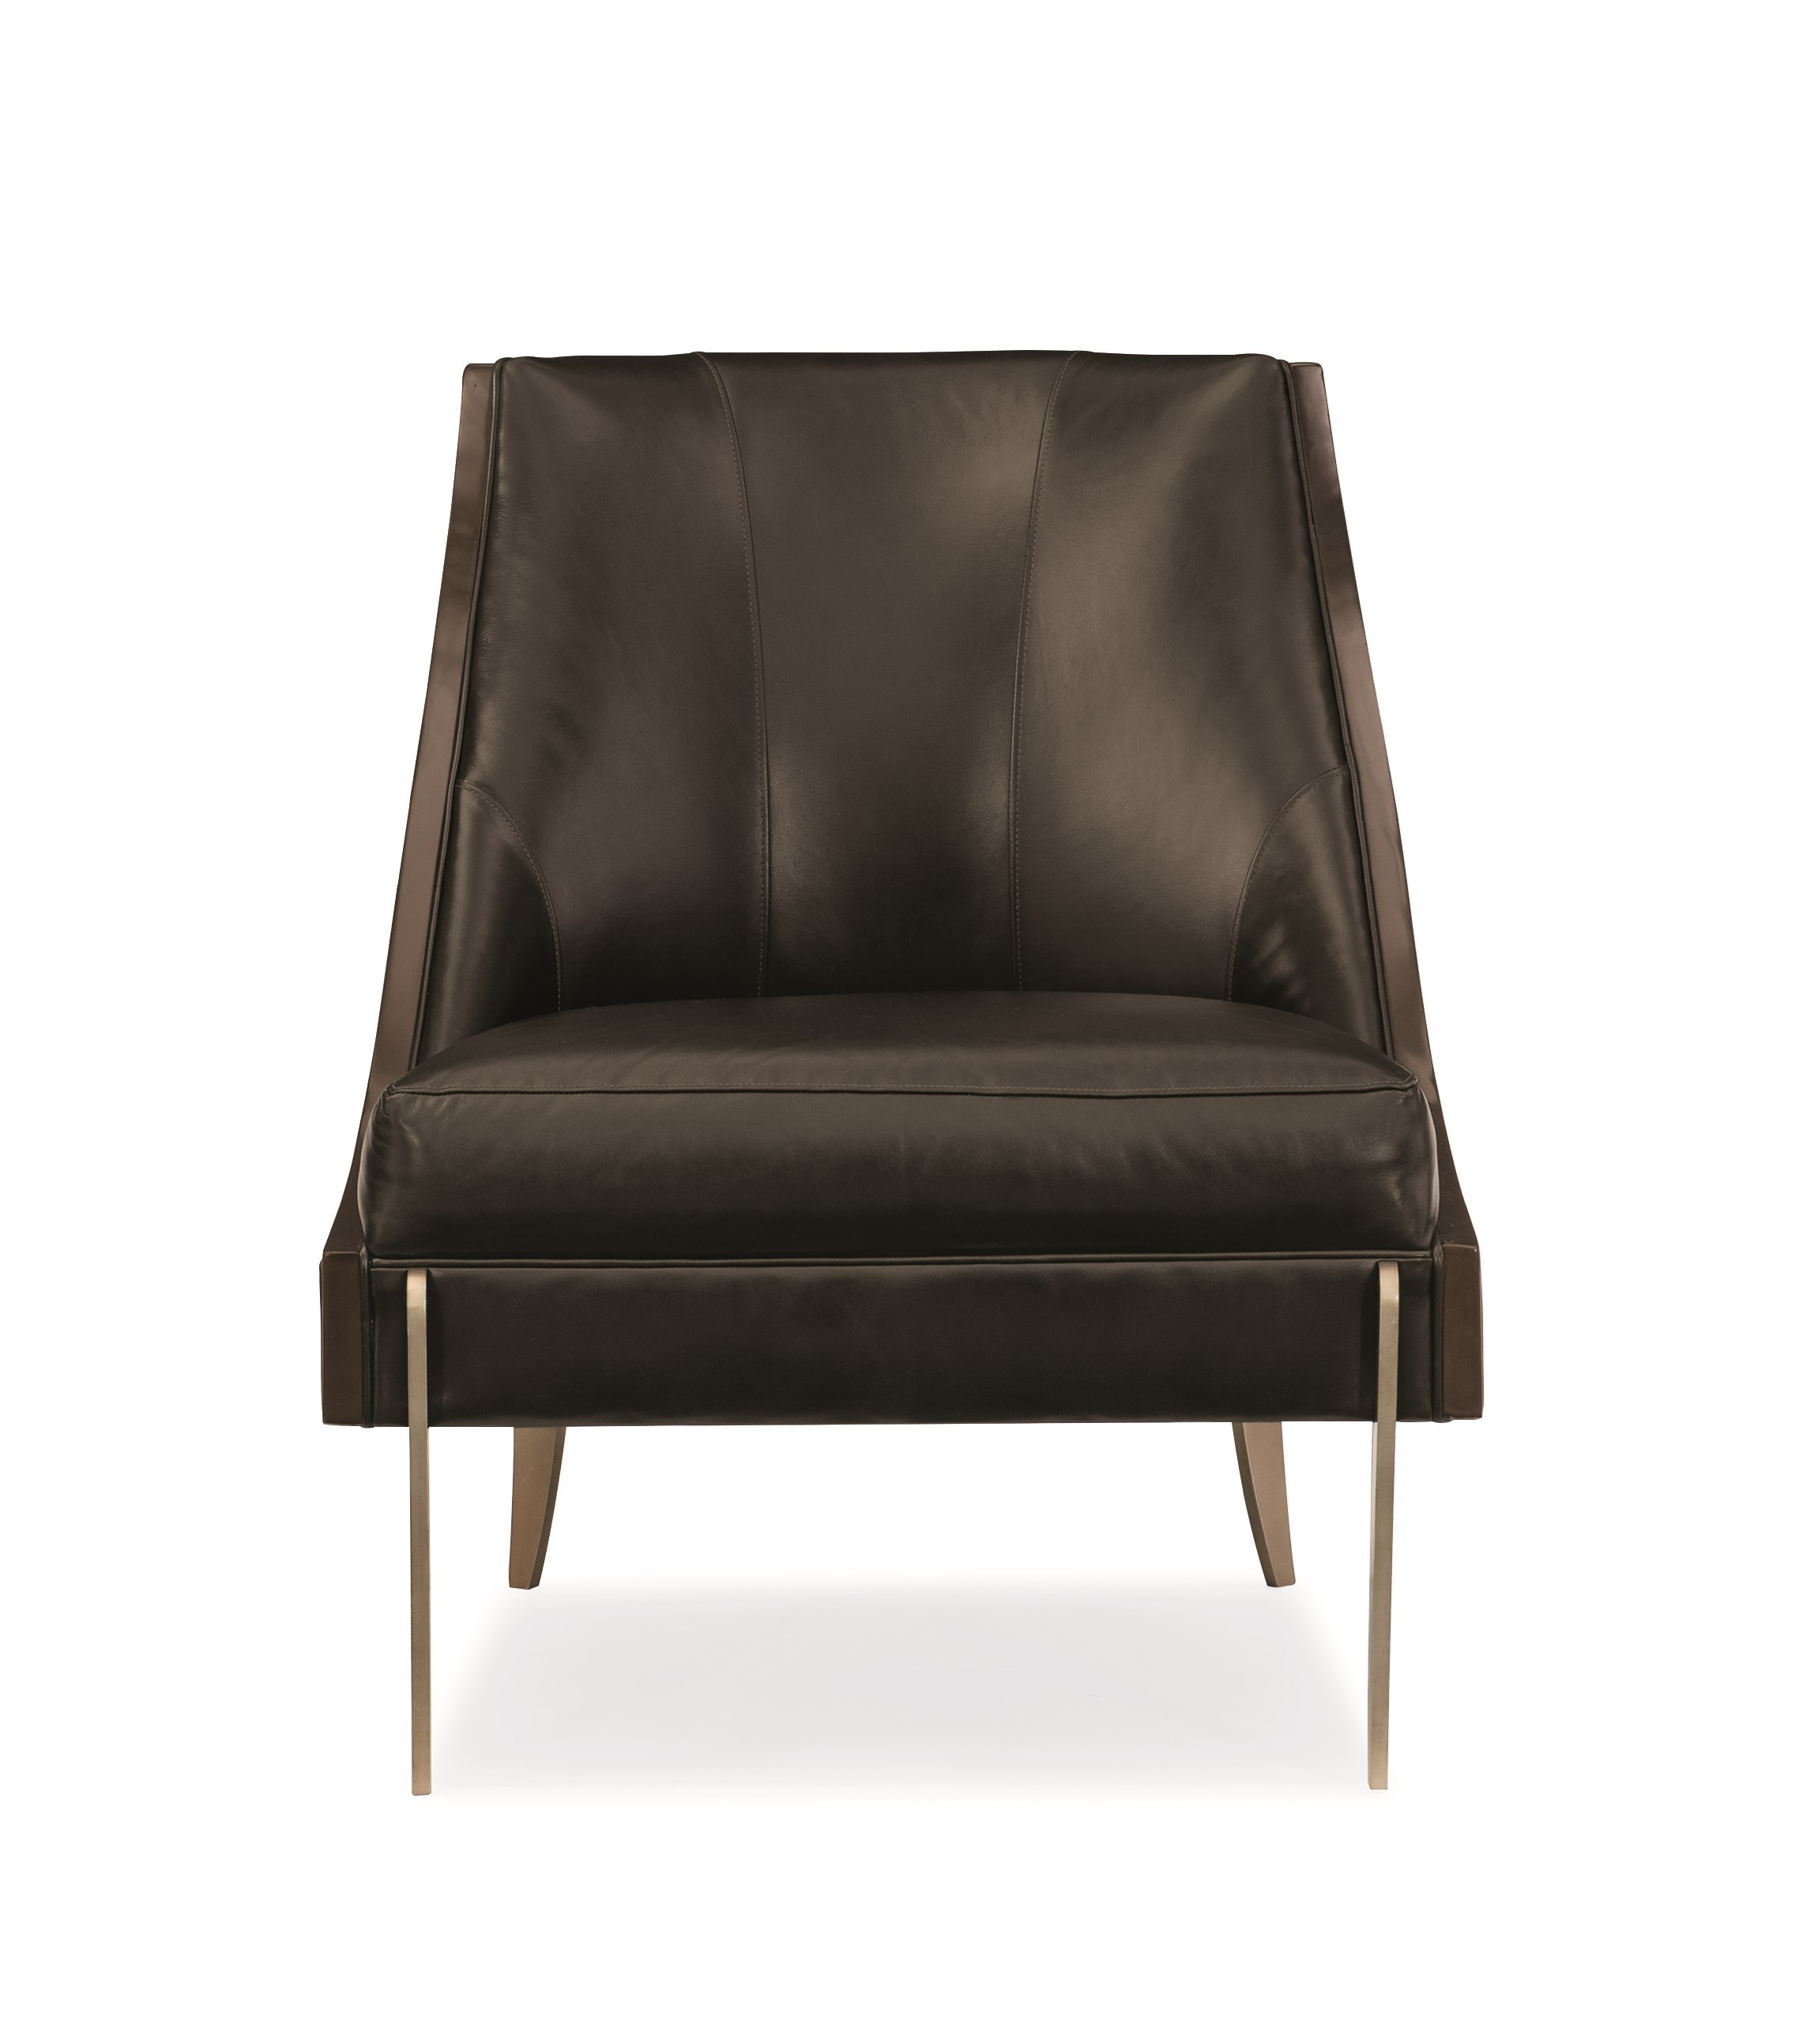 on zephyr urban home couch furniture